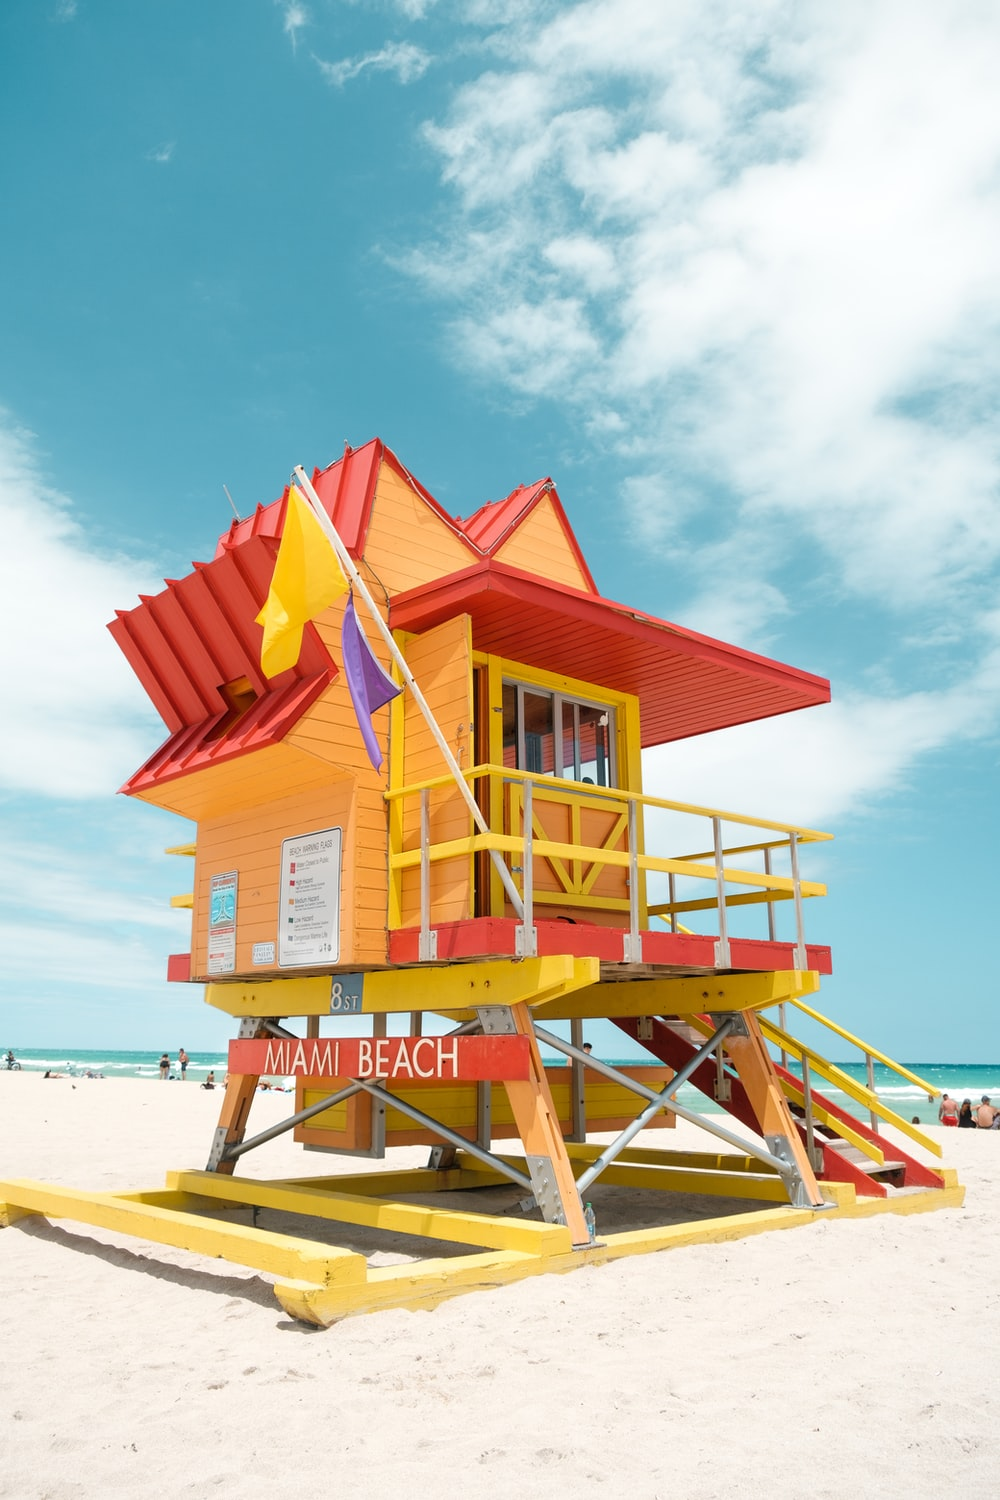 red and white wooden lifeguard house on beach shore during daytime